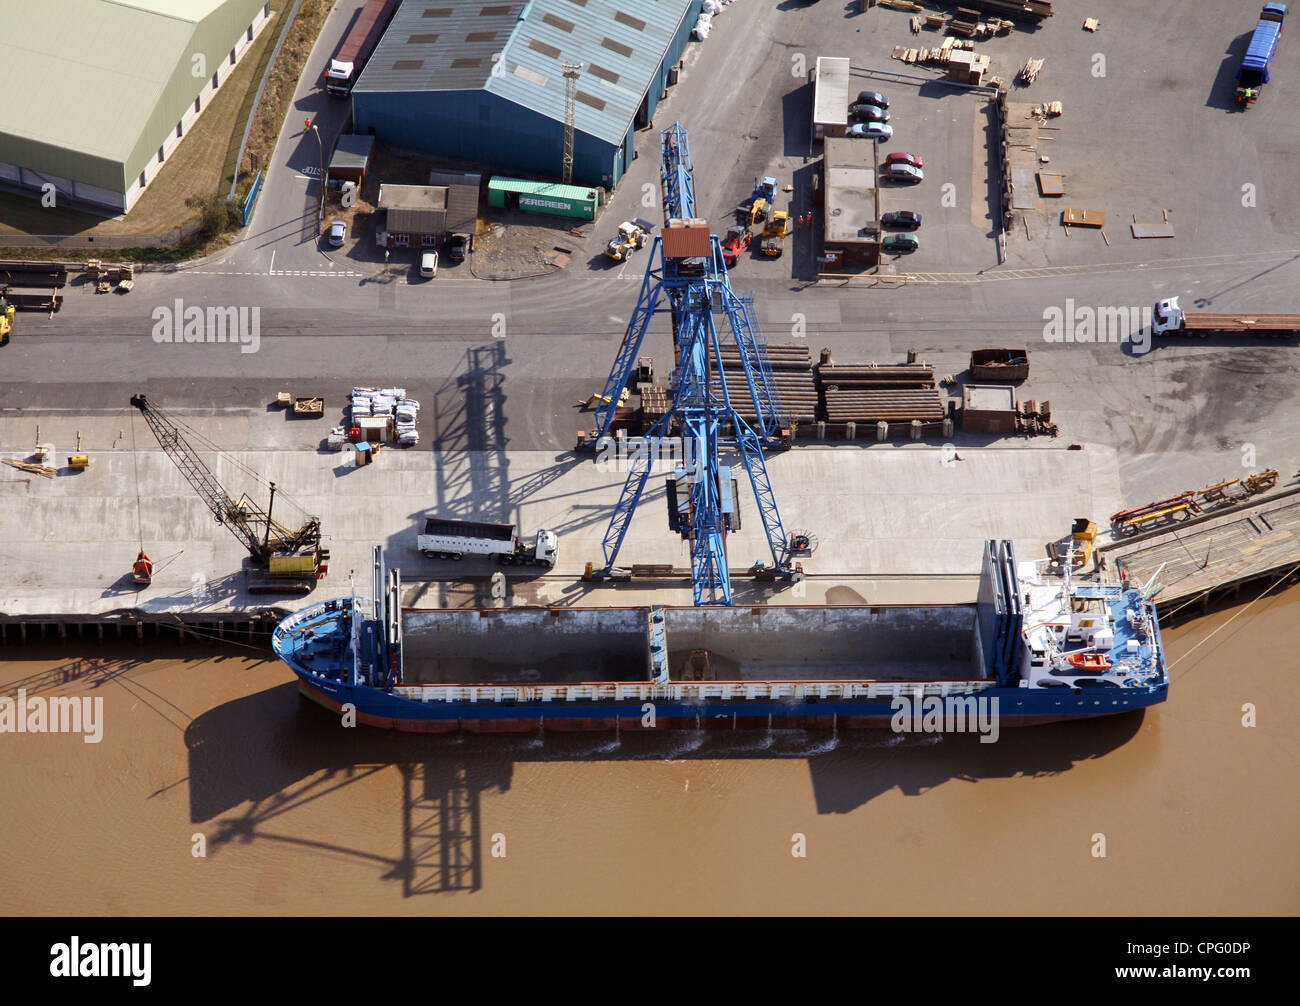 aerial view of a ship at Flixborough Docks, Lincolnshire, ready to be loaded with steel - Stock Image